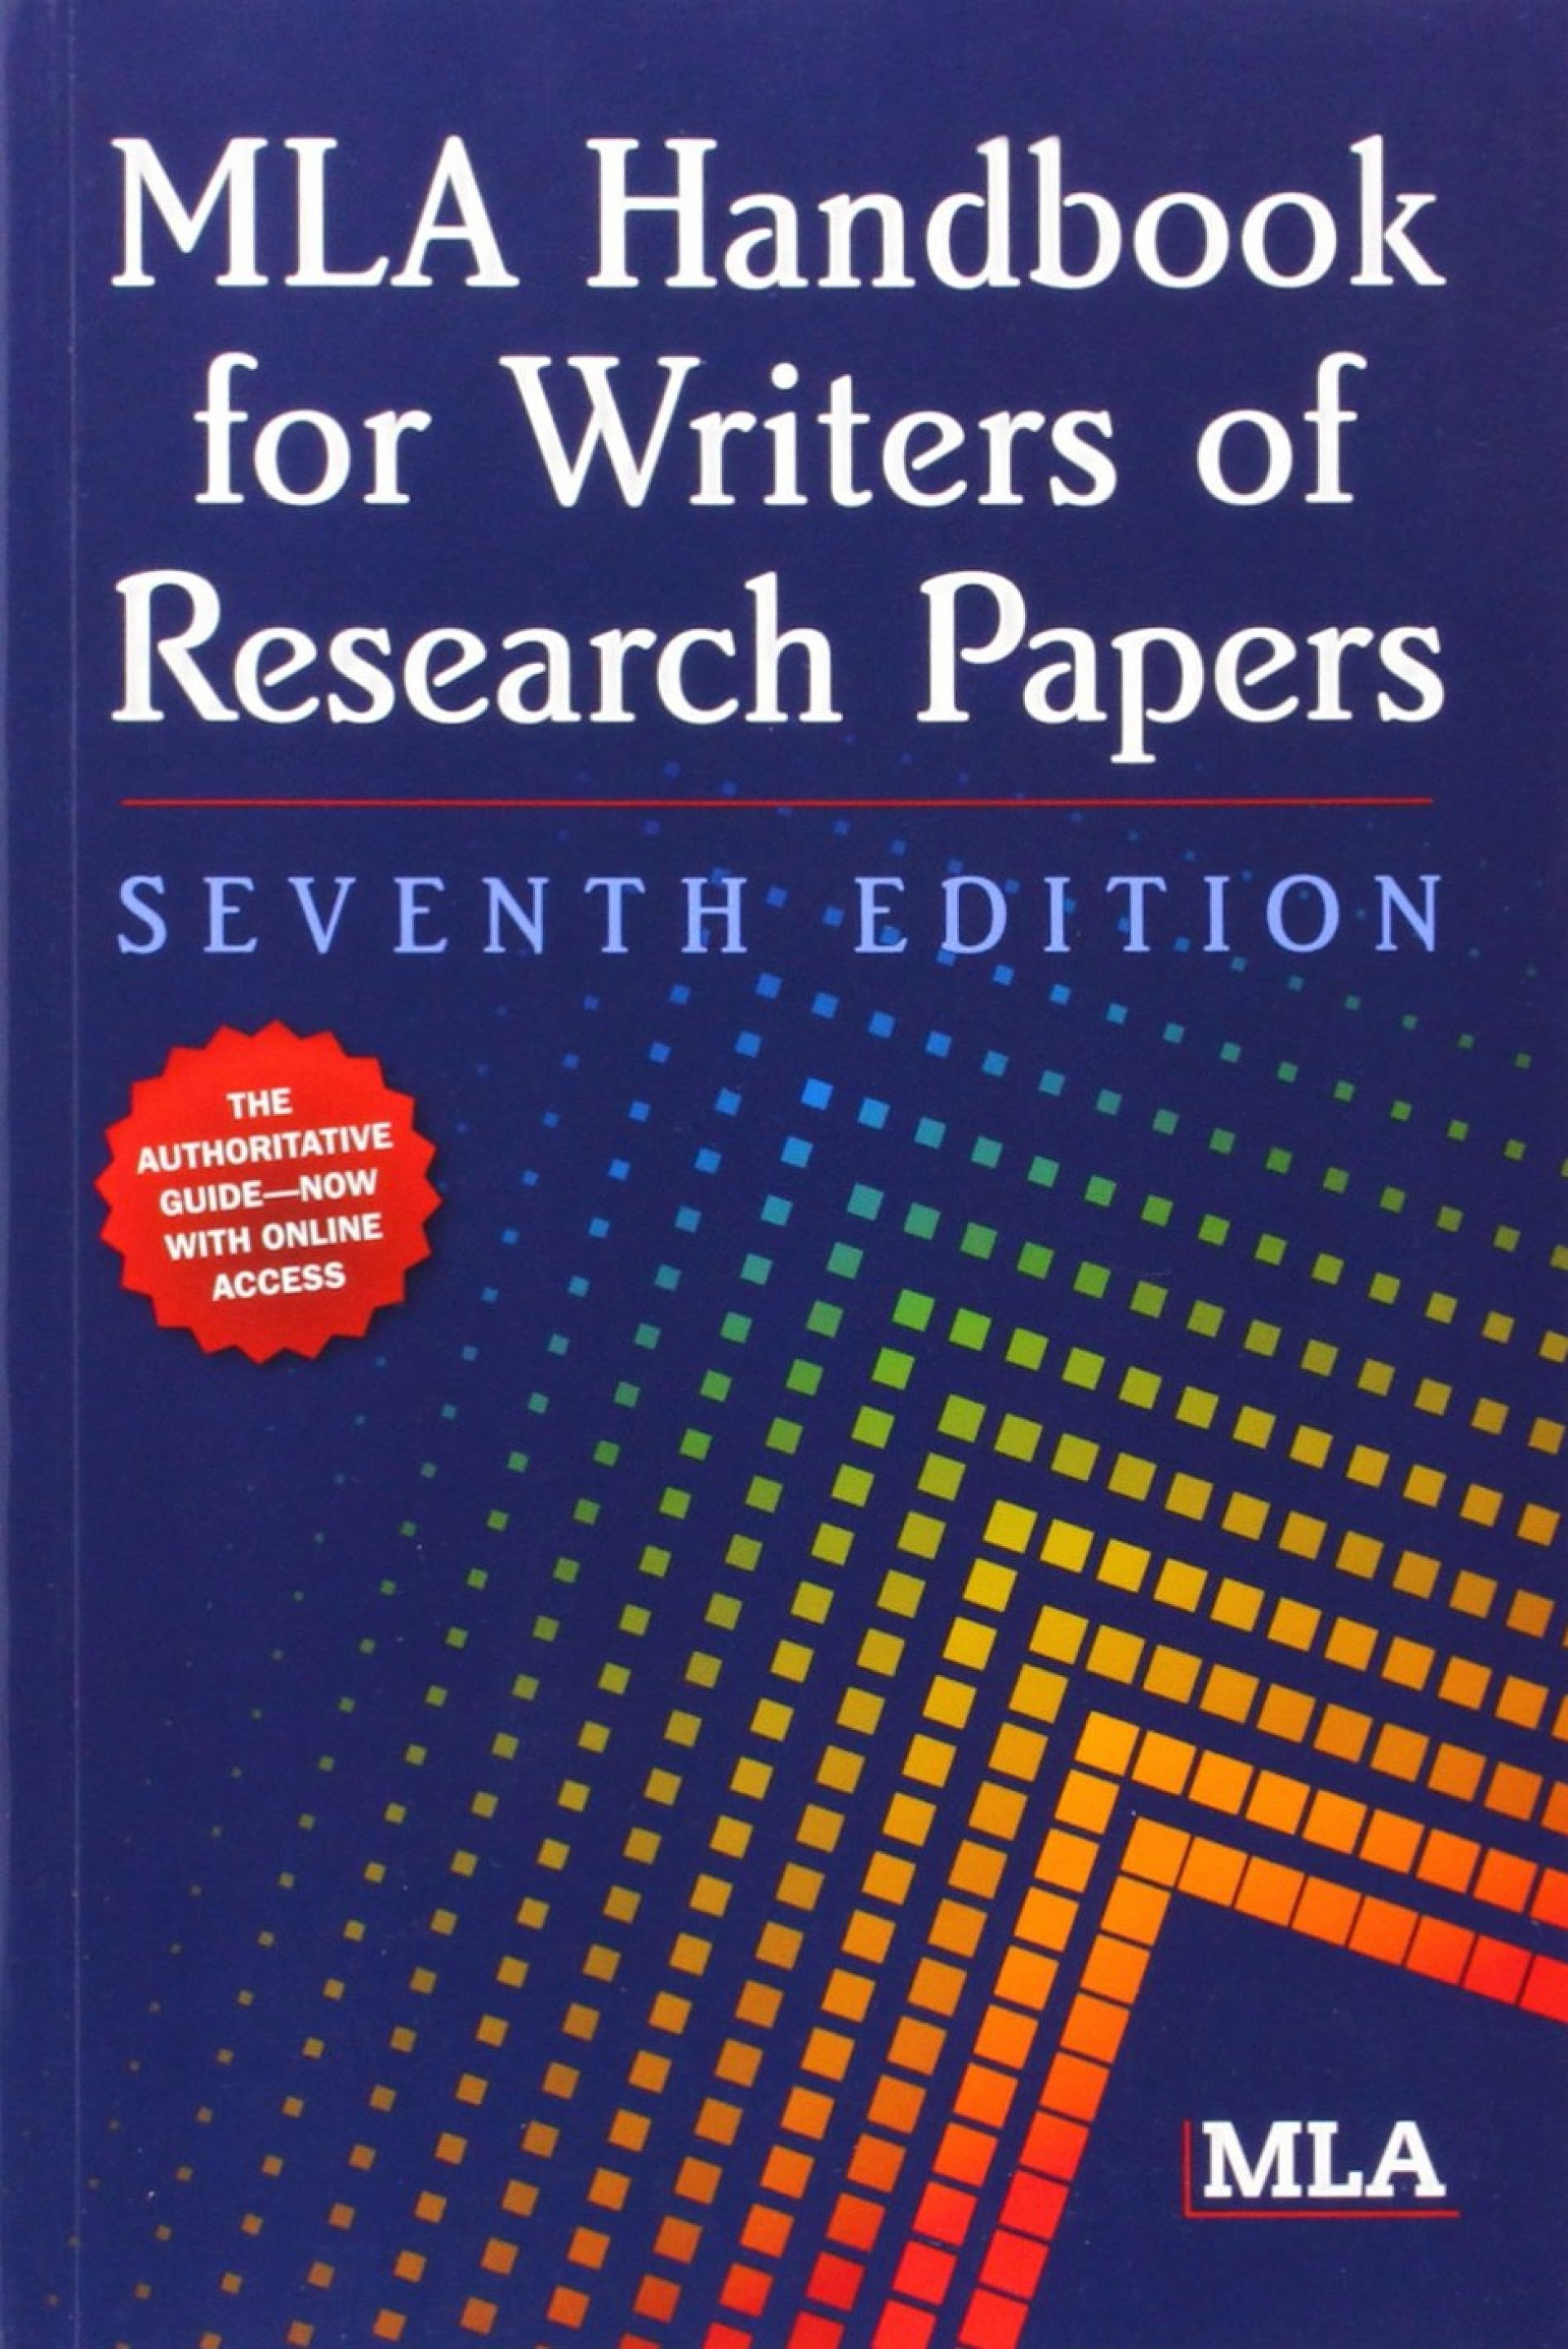 003 Mla Handbook For Writing Researchs Pdf 71lknvqs6gl Beautiful Research Papers Writers Of 7th Edition Free 6th 2009 1920